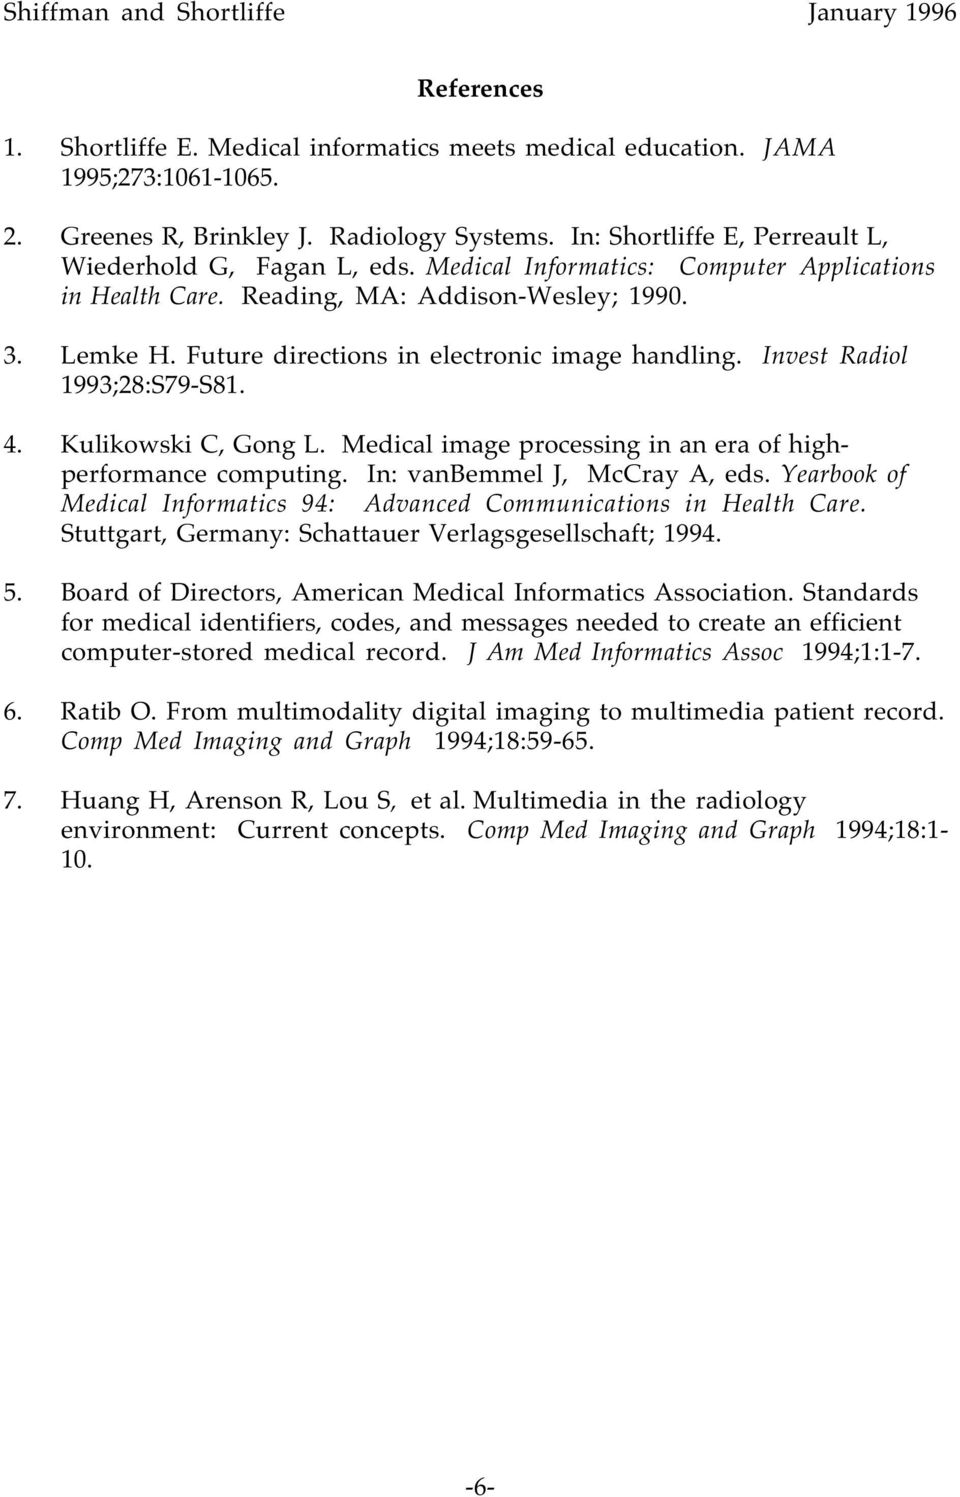 Future directions in electronic image handling. Invest Radiol 1993;28:S79-S81. 4. Kulikowski C, Gong L. Medical image processing in an era of highperformance computing. In: vanbemmel J, McCray A, eds.